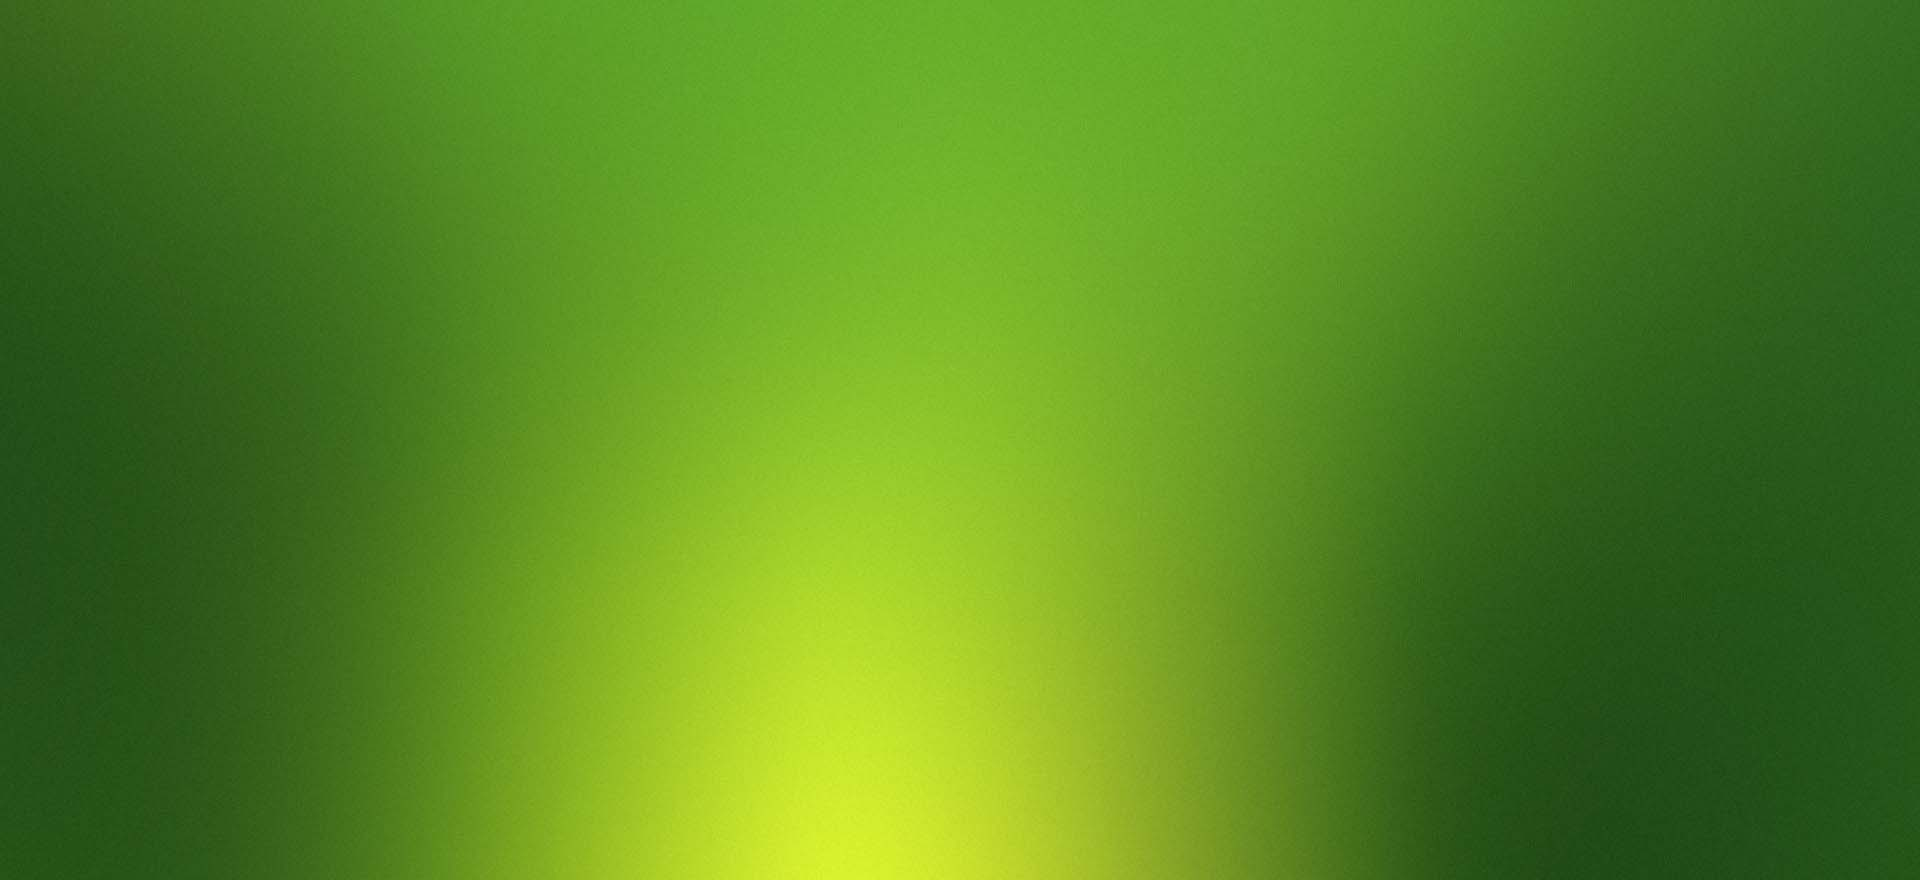 gradient green luminous yellow background  gradual  change